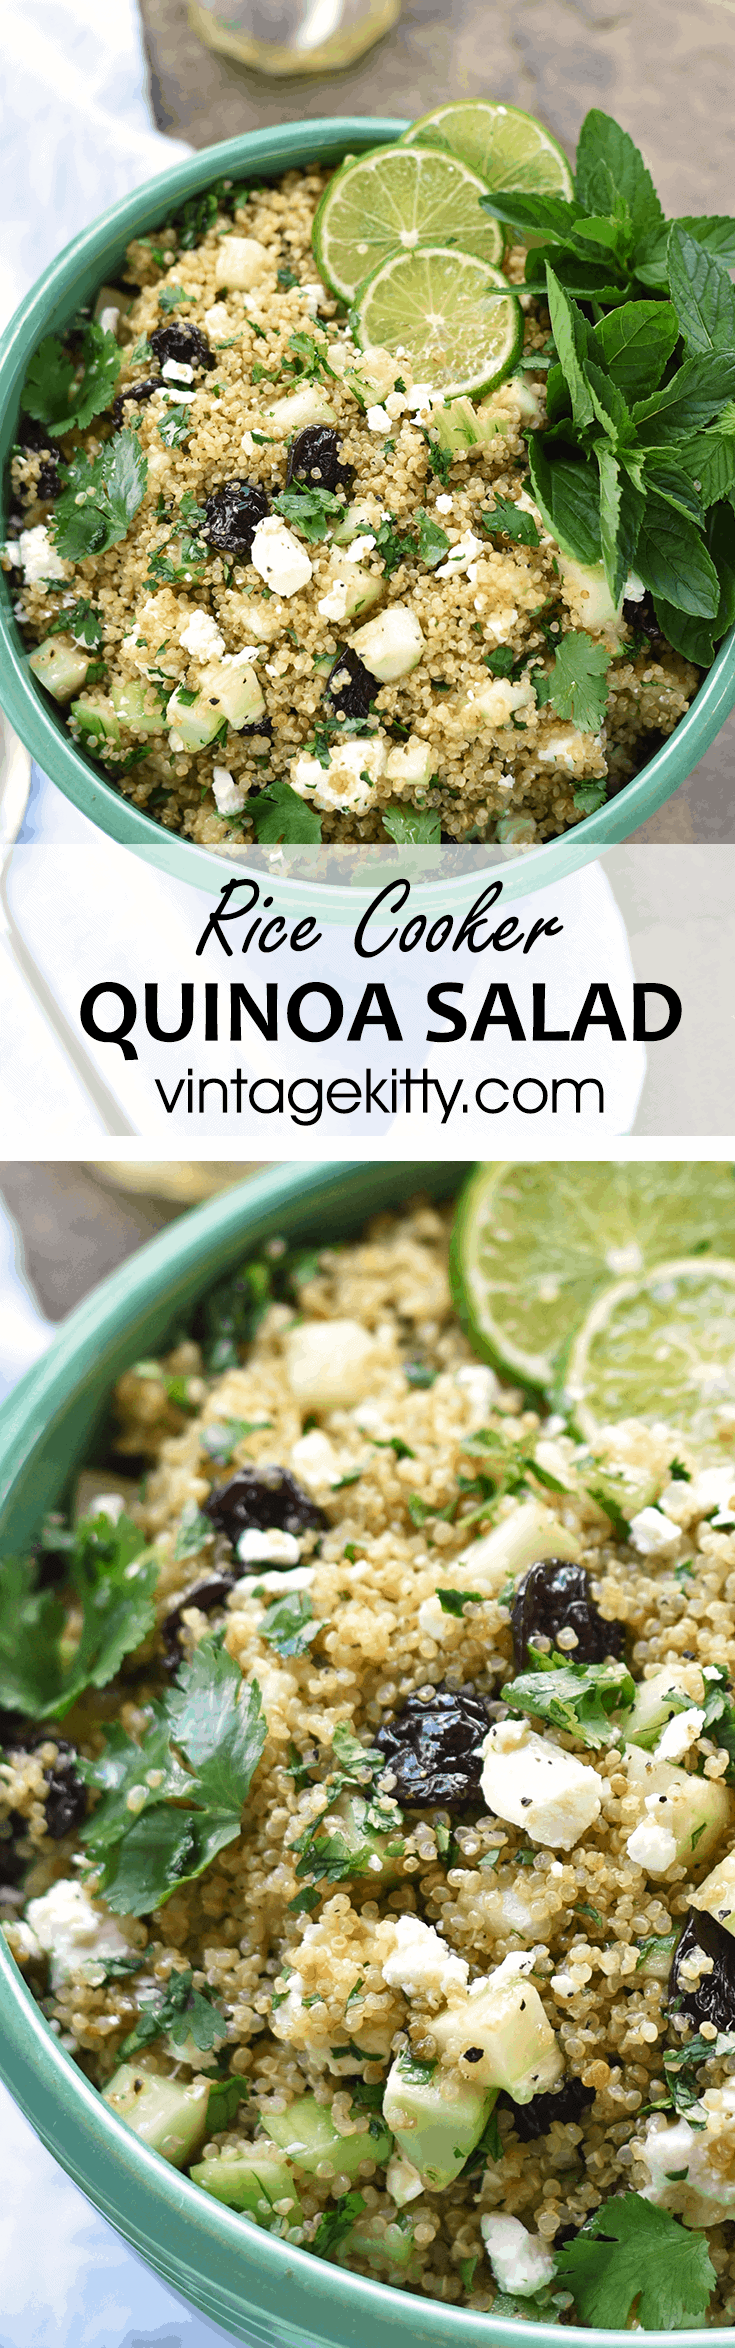 Rice Cooker Quinoa Salad Pin - Rice Cooker Quinoa Salad with Feta and Dried Cherries